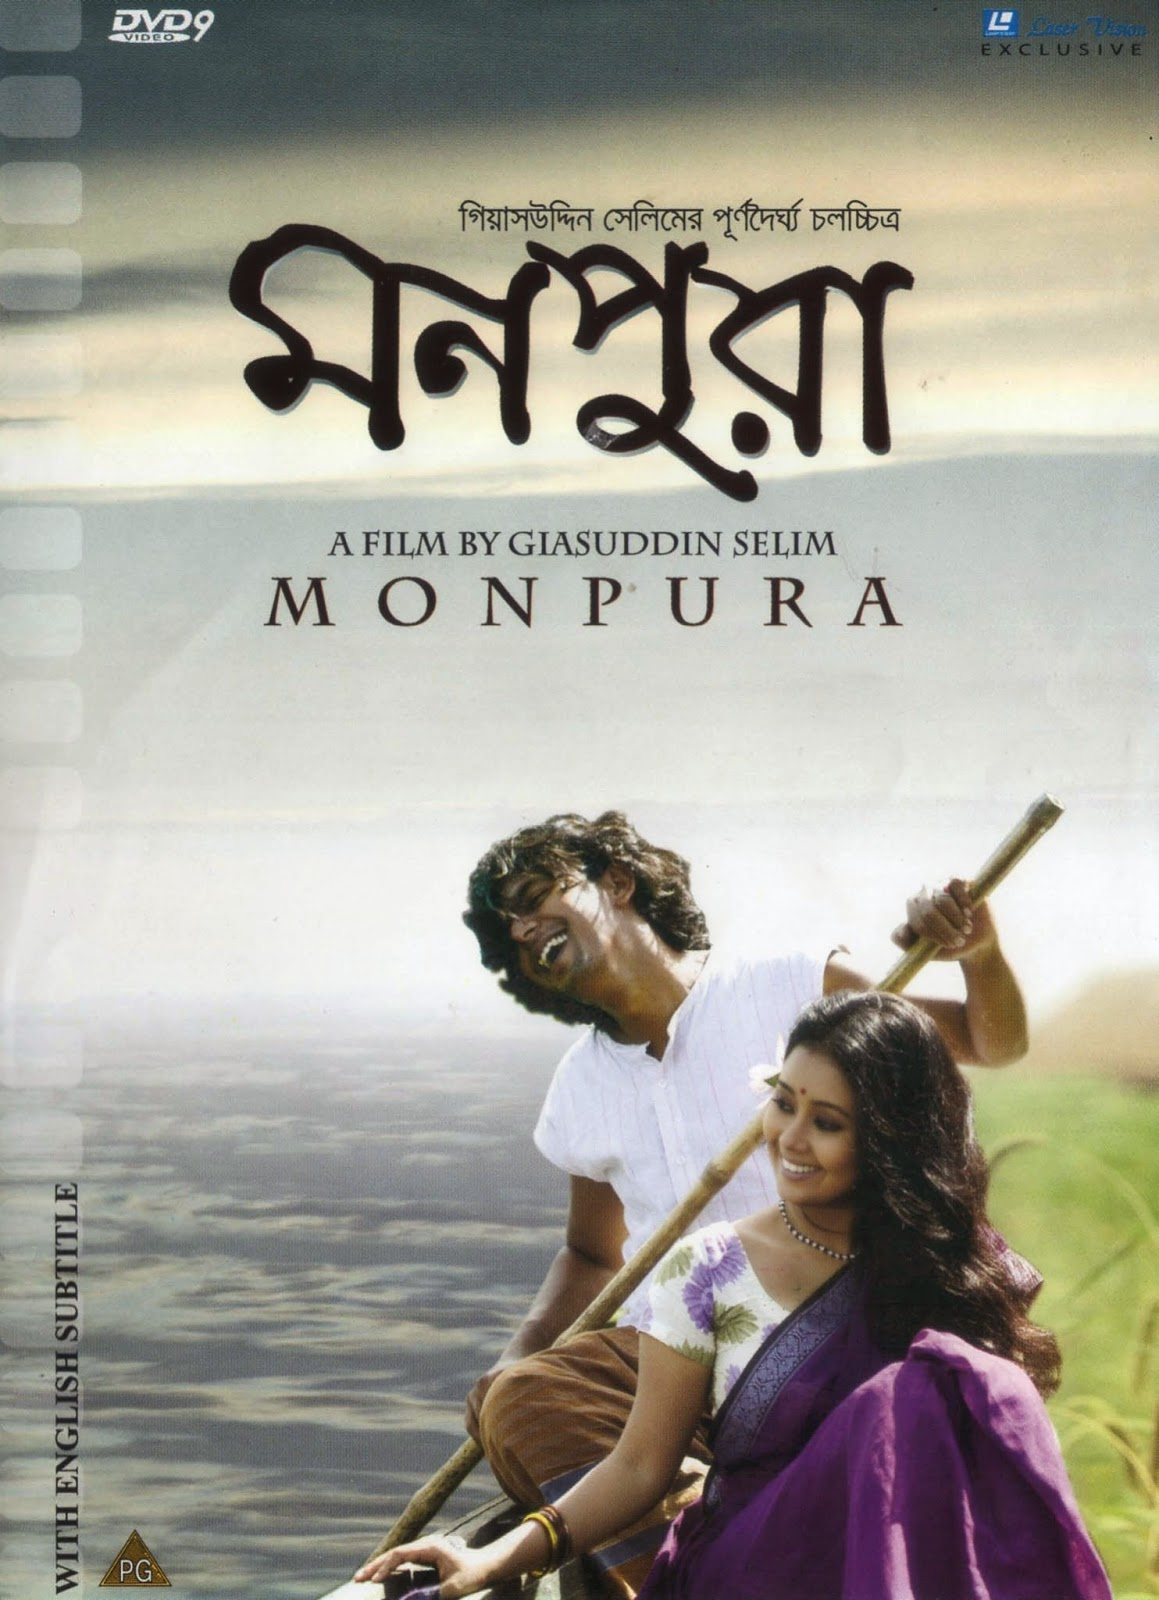 MONPURA, BANGLA MOVIE, BANGLA MOVIES, BANGLADESHI MOVIE, BANGLADESHI MOVIES, BANGLADESHI FILM, BANGLA FILM.